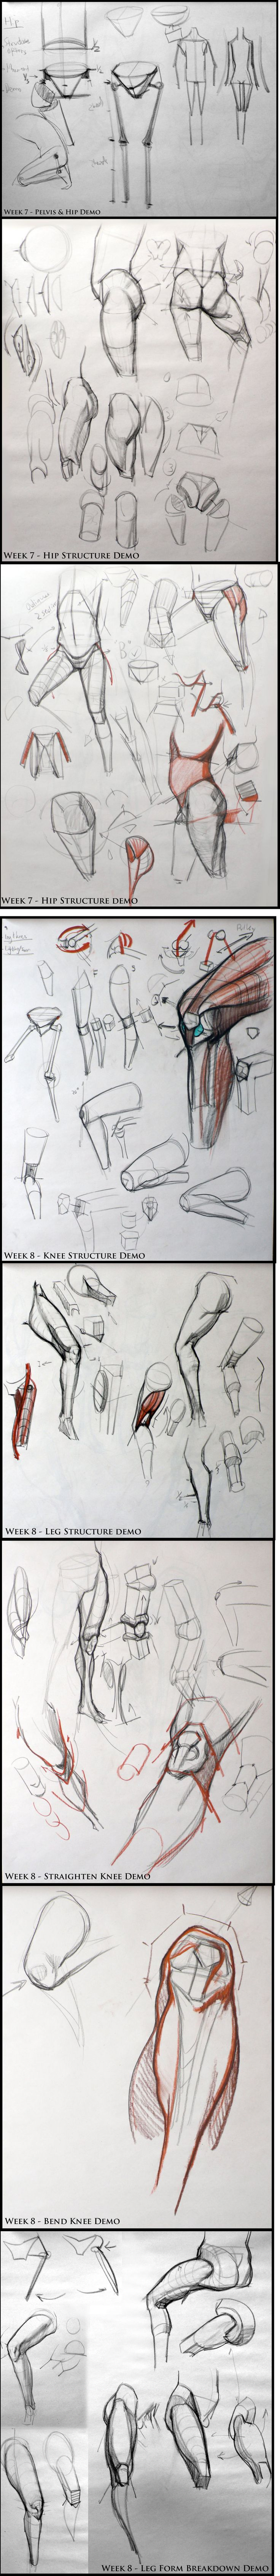 Pelvis & hip structure / Leg & knee - analyticalfiguresp08.blogspot - Kevin Chen #analytical #drawing #figureDrawing #instructorDemo #structure